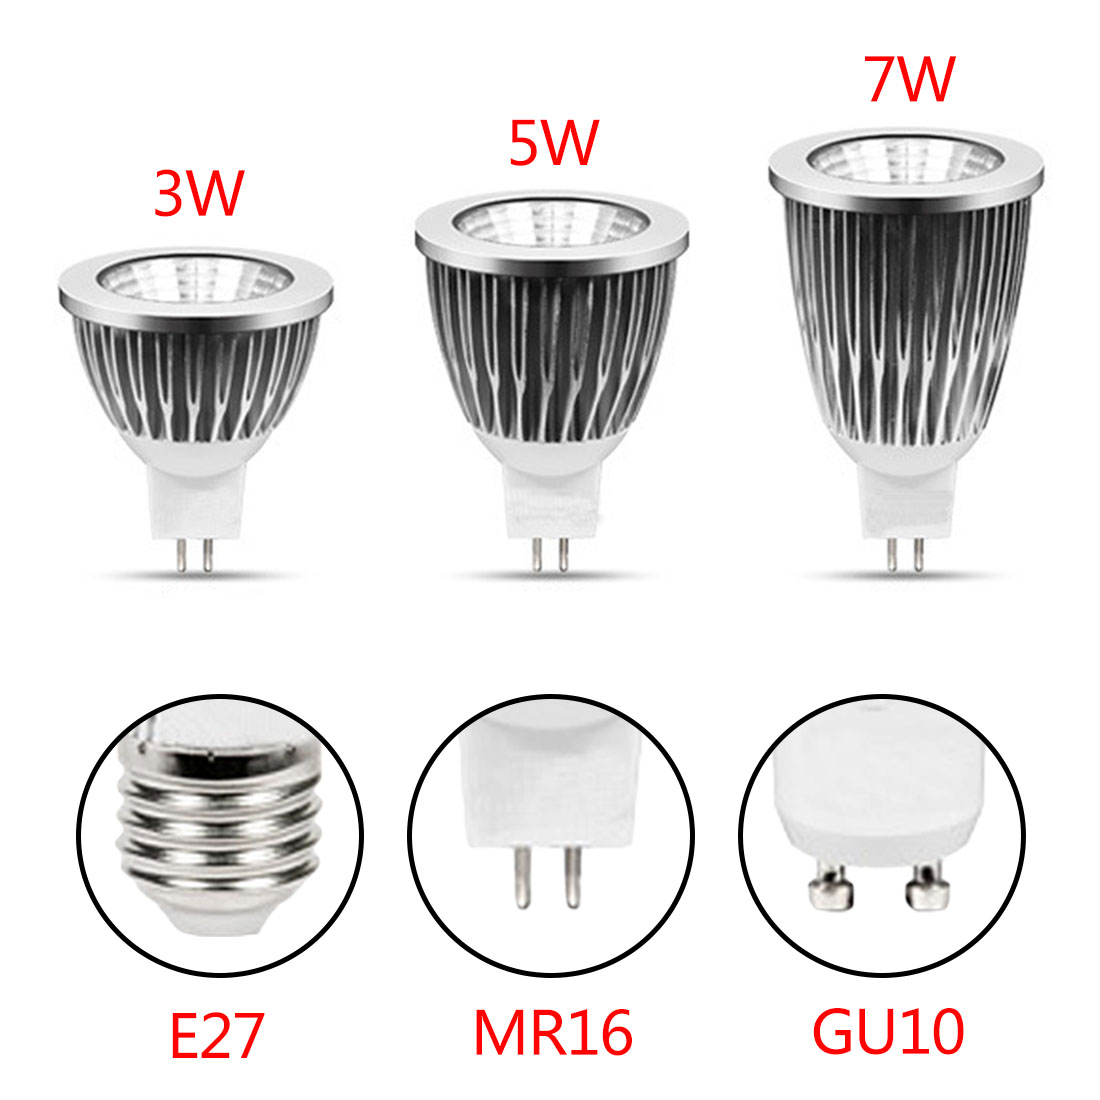 Warm White 3W 5W 7W Bulb Replace Energy Saving Lamp GU10 E27 220V 110V 12V Spot Light LE ...